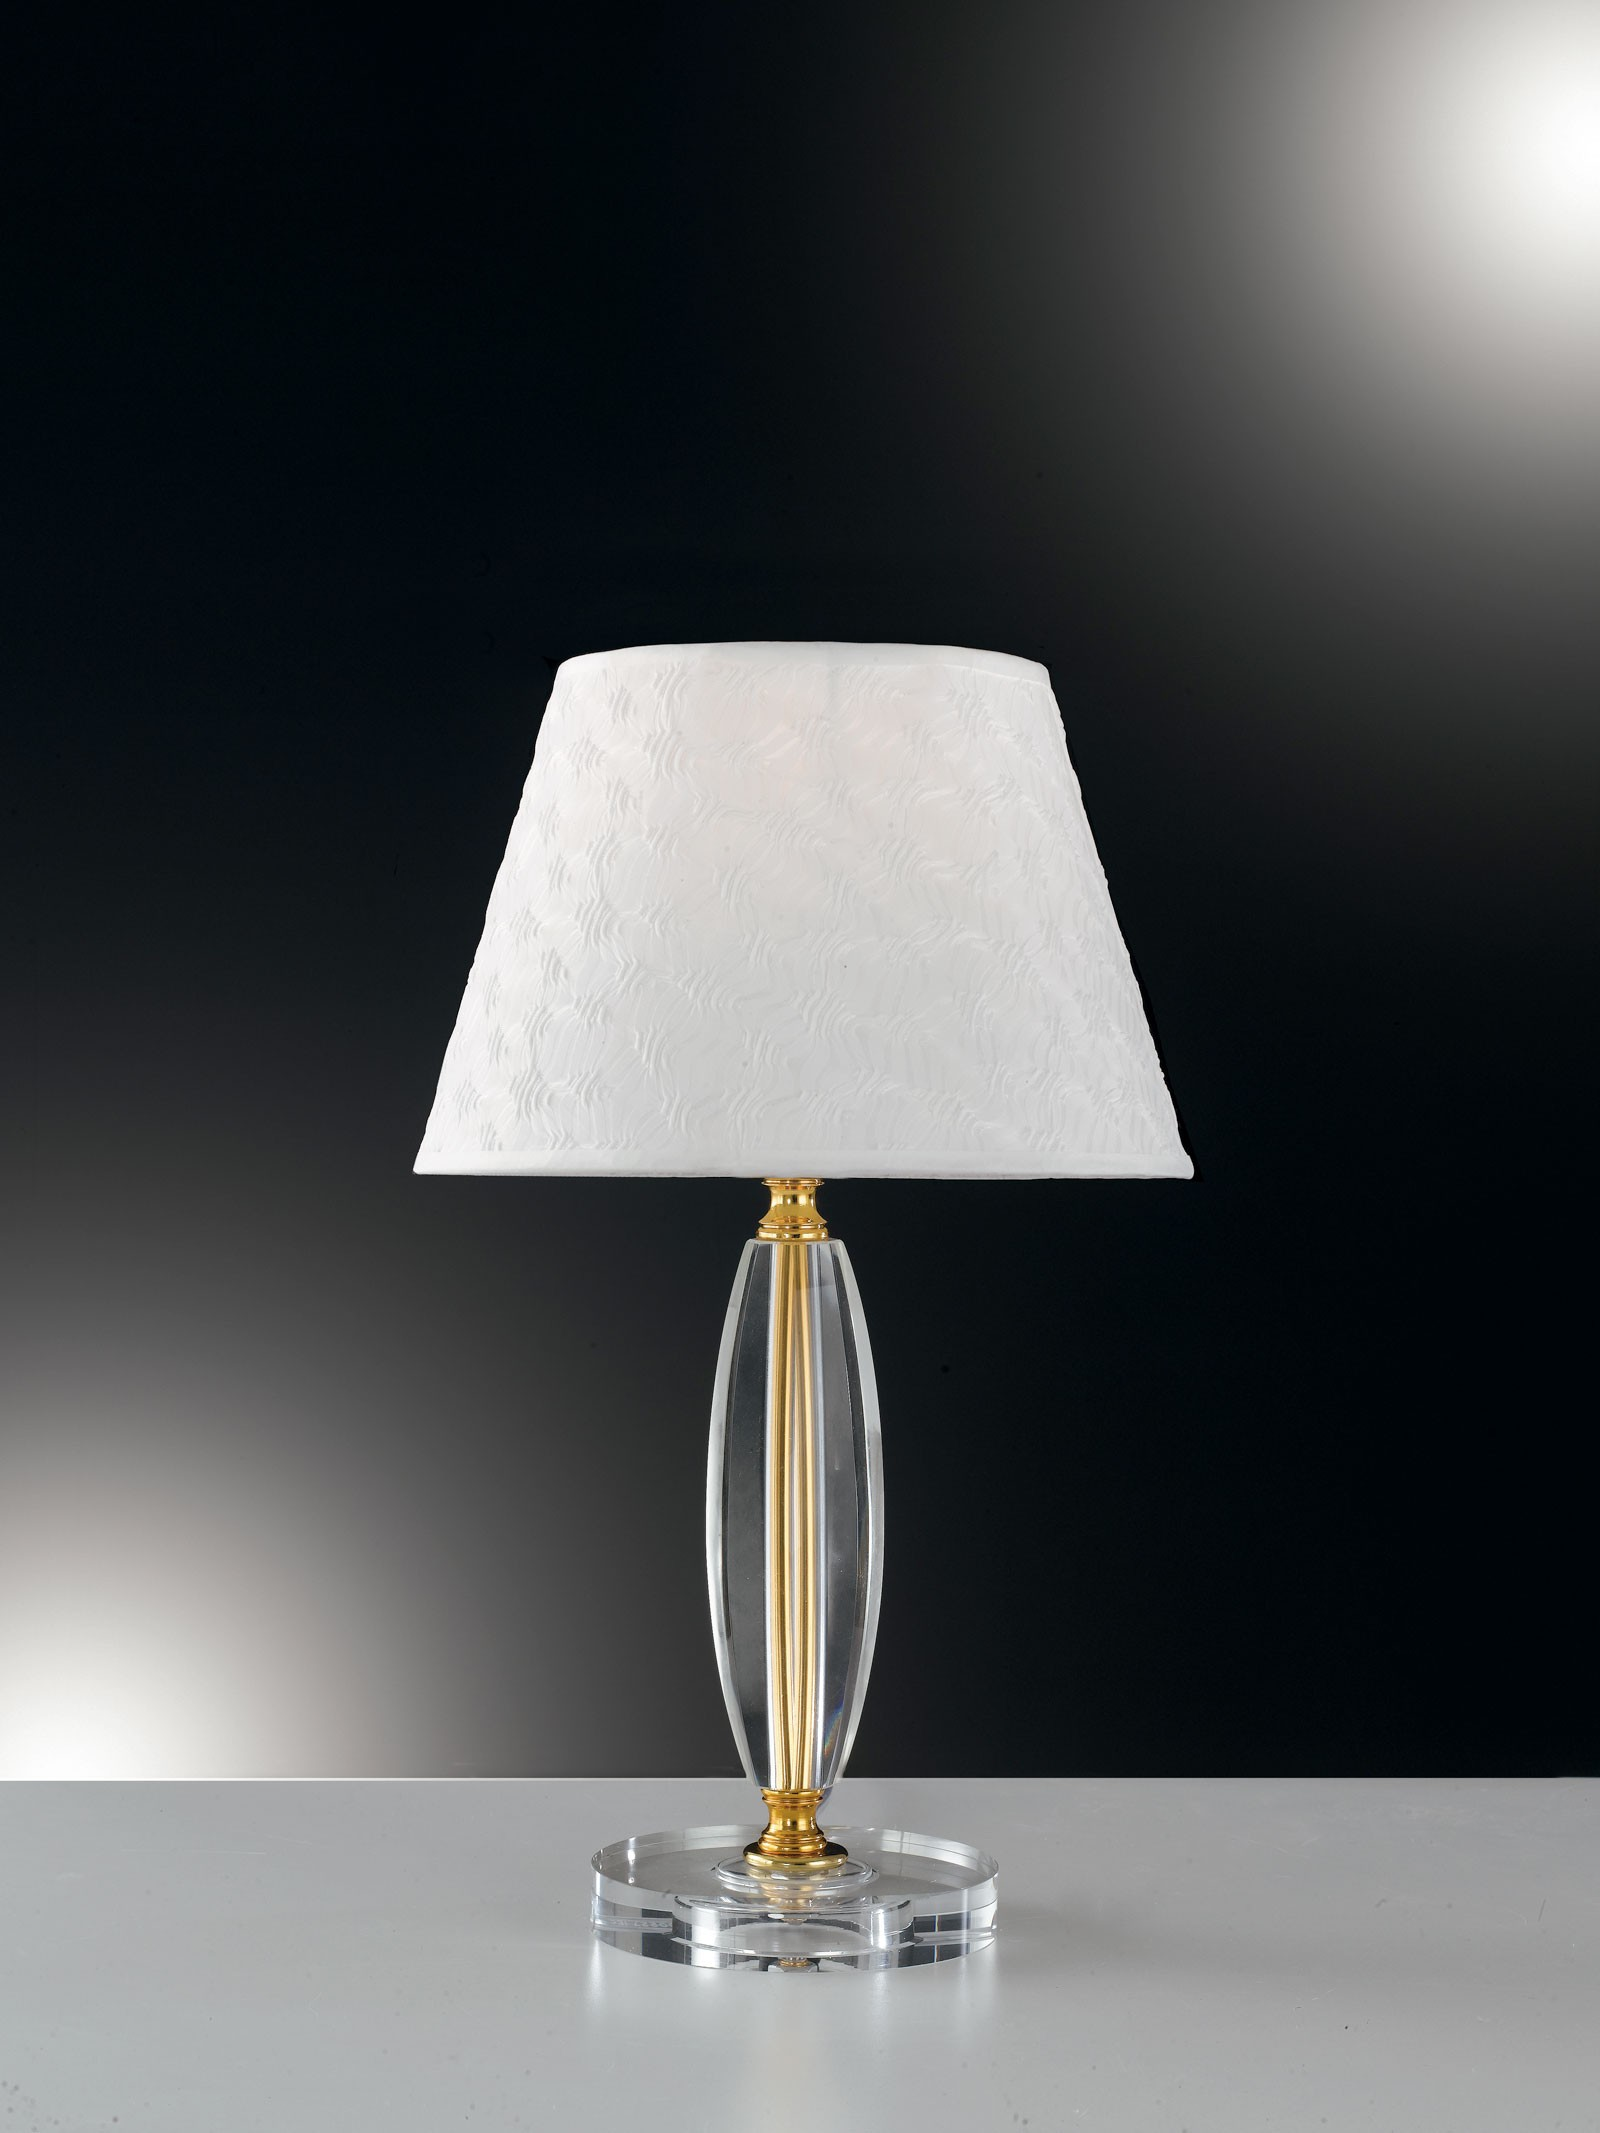 Best Lampade Da Comodino Classiche Ideas - Skilifts.us - skilifts.us